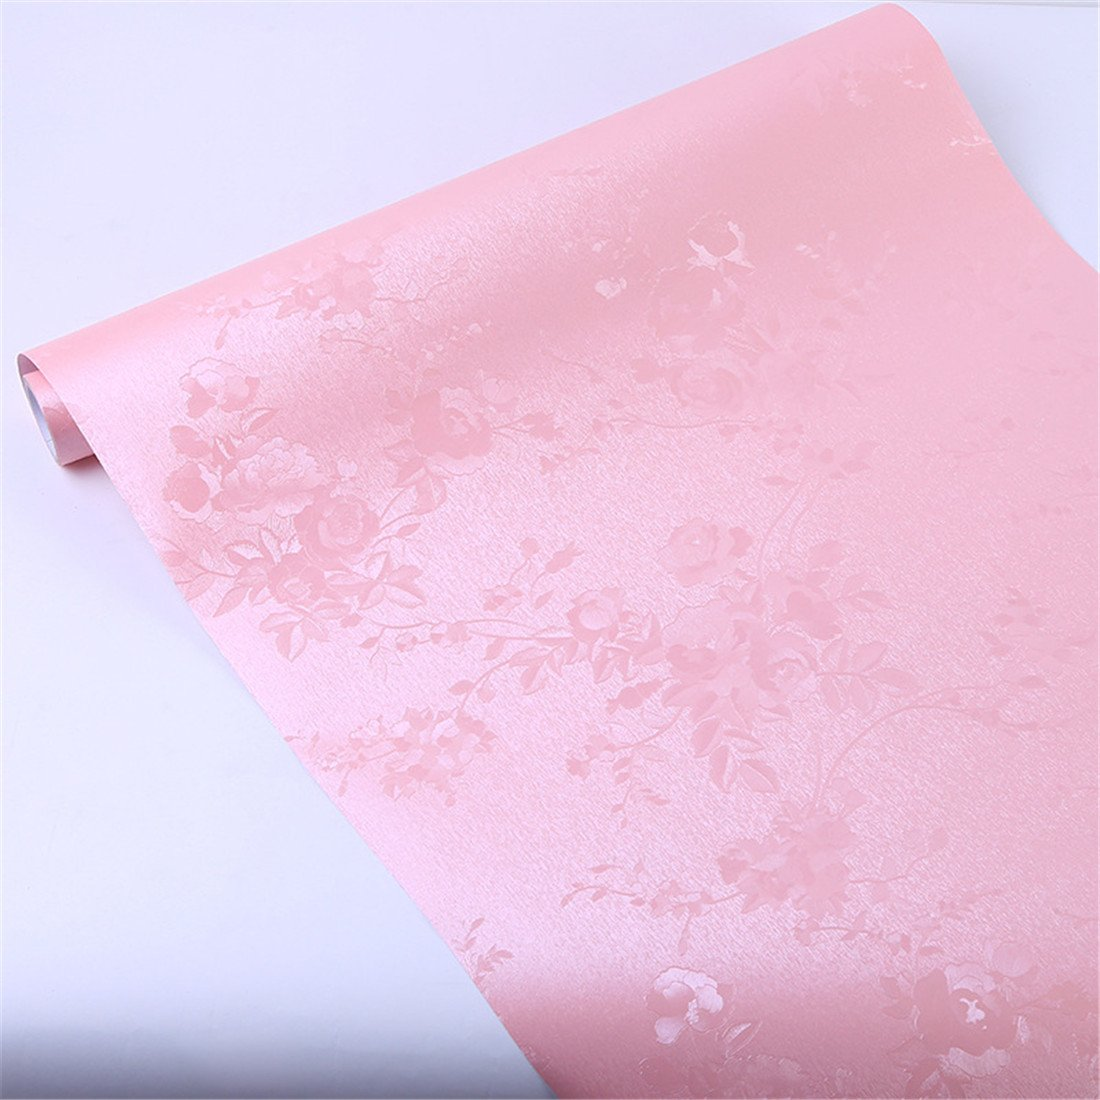 Vanyear Pink Contact Paper Self-Adhesive Wall Paper Shelf Liner Girl's Room Decoration 23.6 Inch by 16.4 Feet